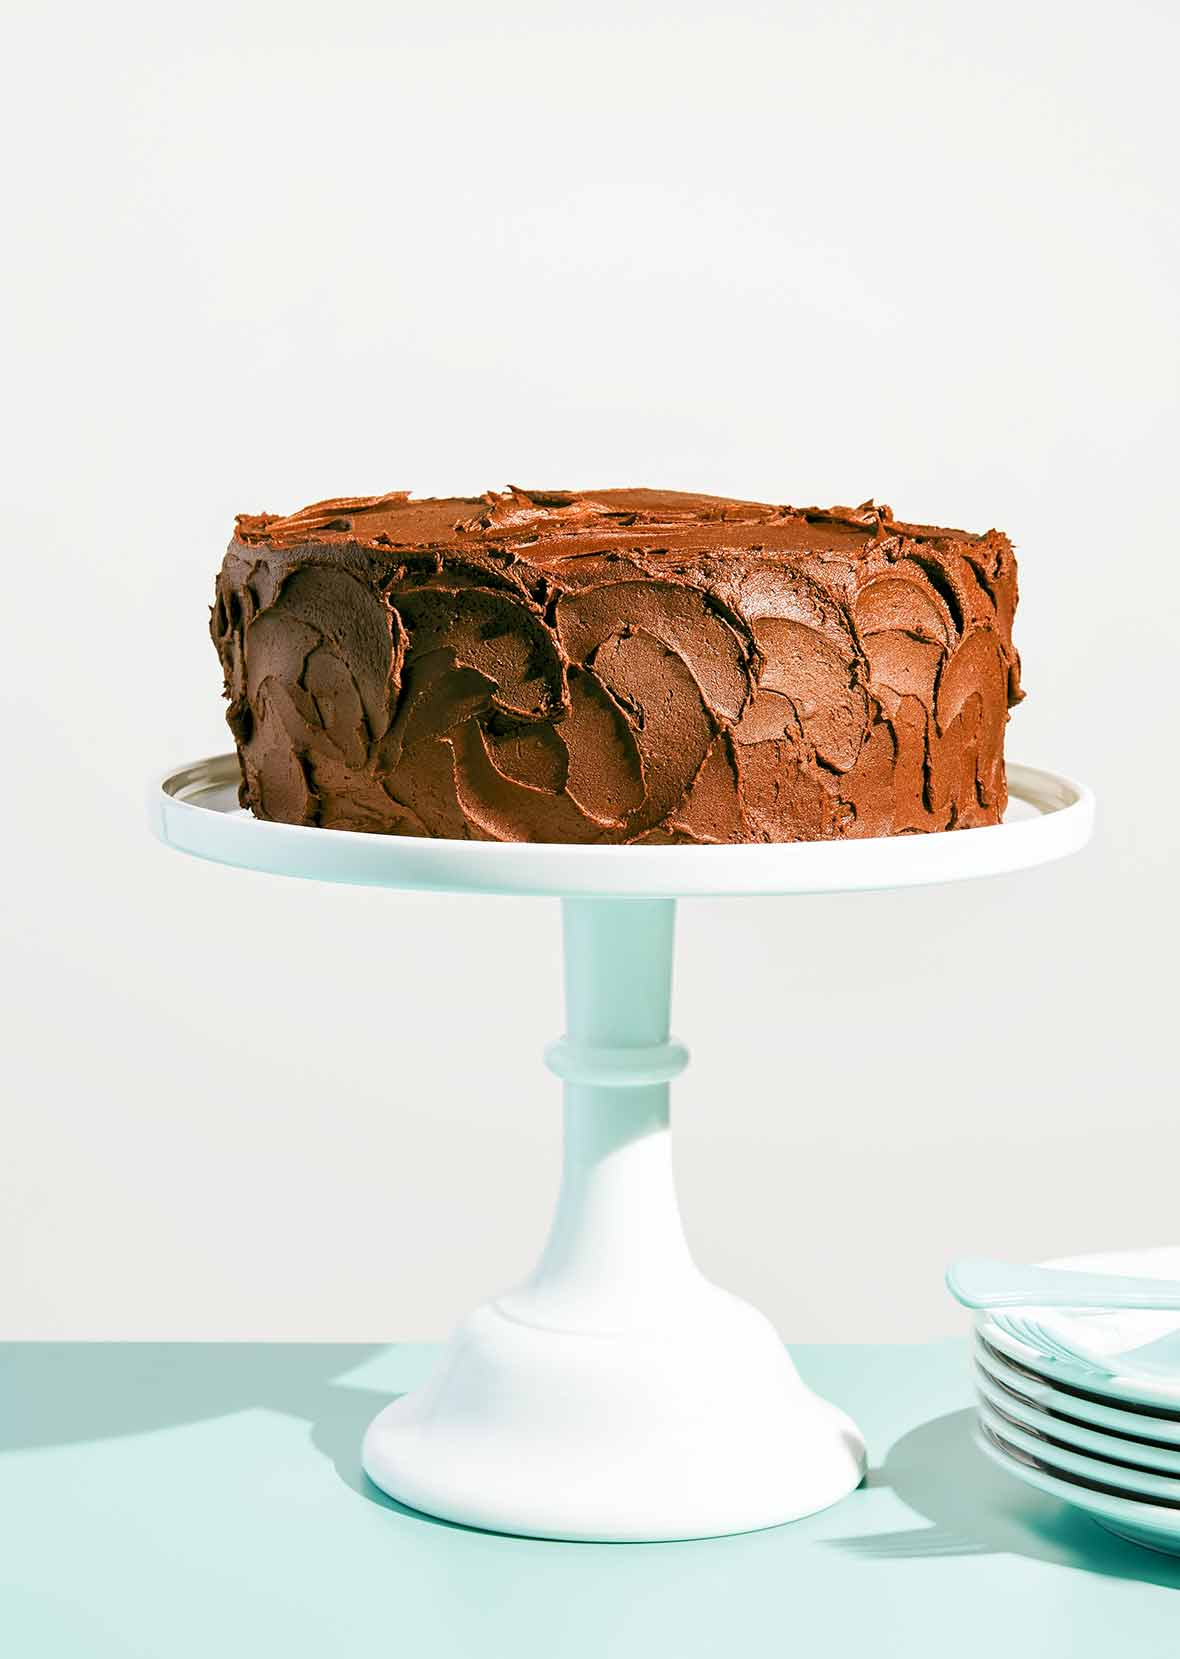 A yellow cake with chocolate frosting on a white cake stand